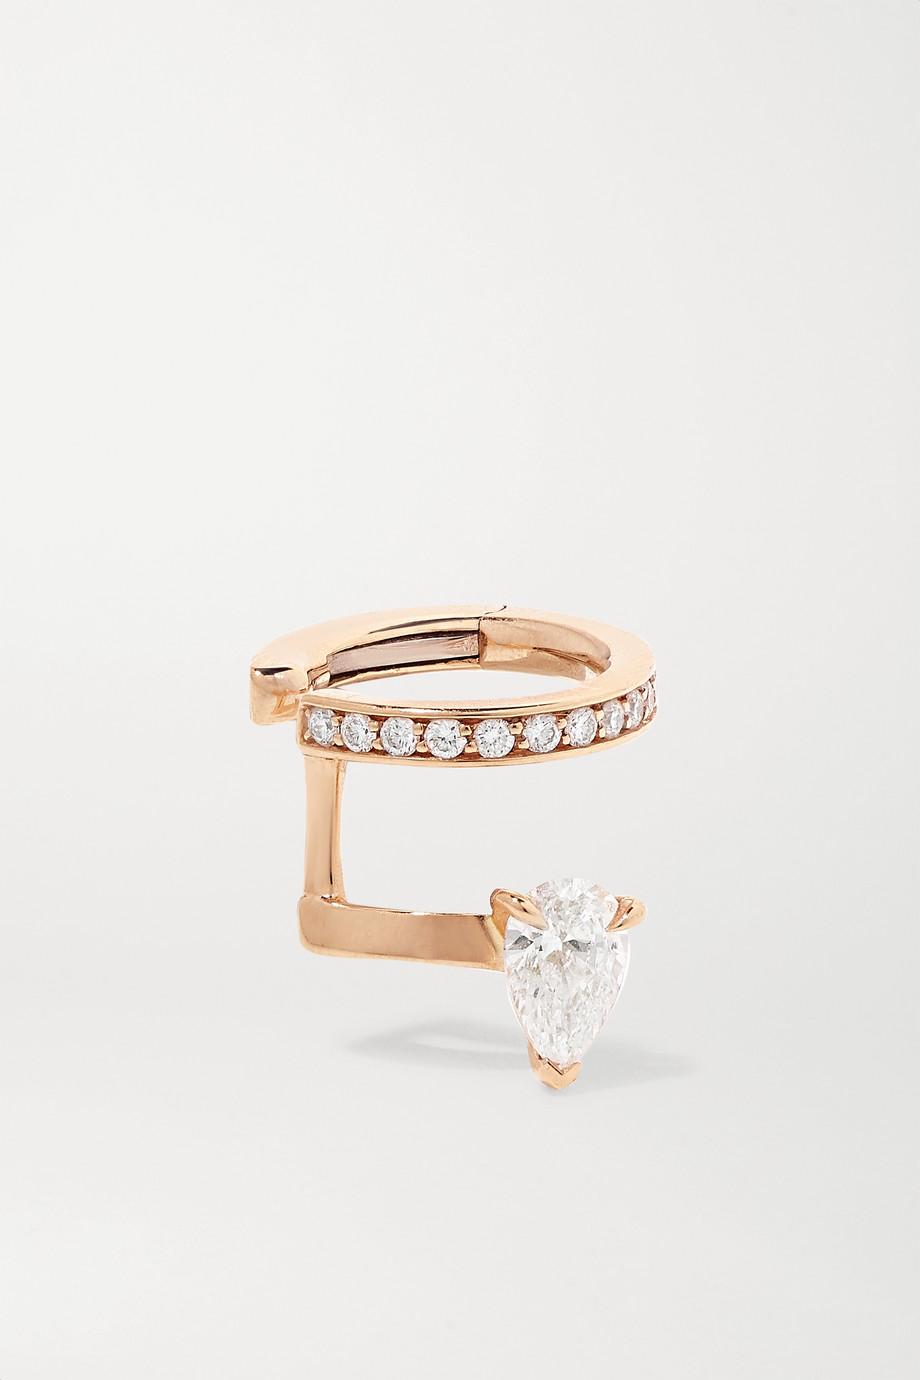 Repossi Serti Sur Vide 18-karat rose gold diamond ear cuff